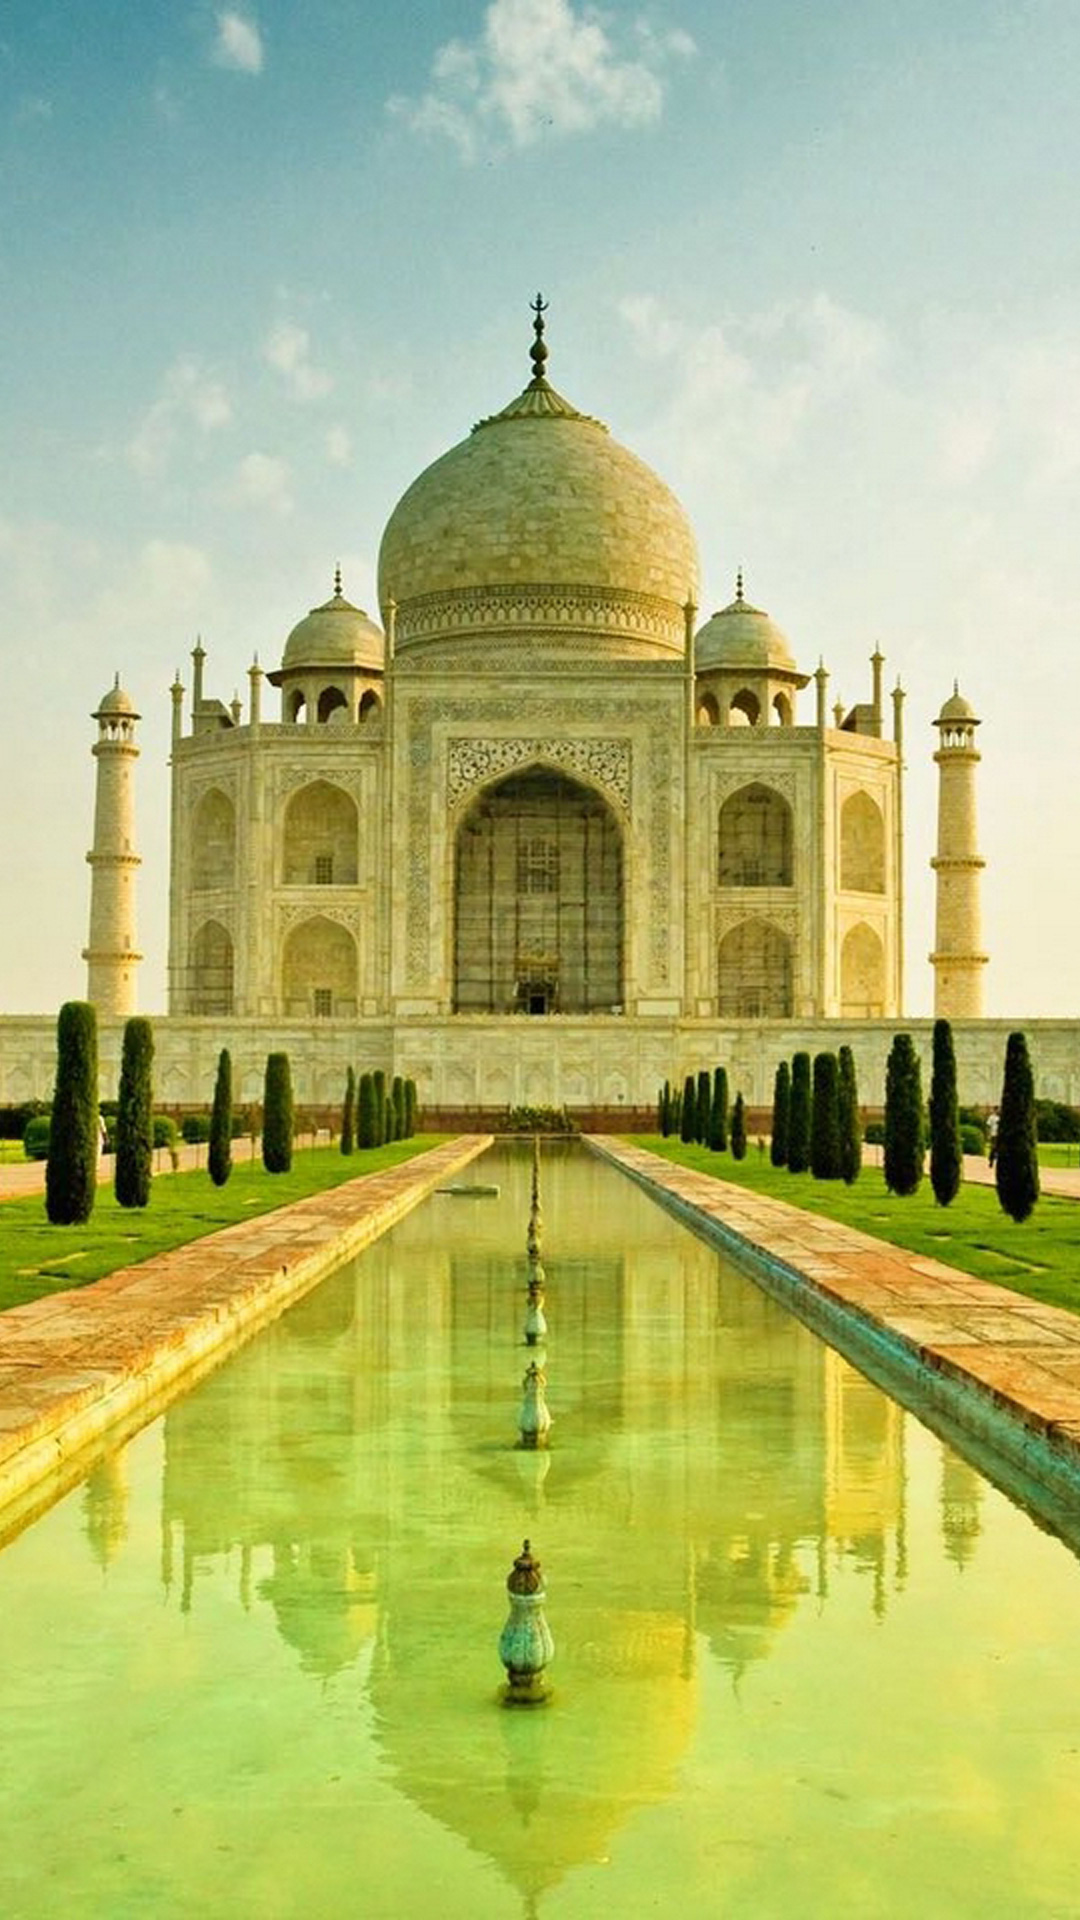 Taj mahal agra india hd wallpaper iphone 6 plus for Wallpapers for house wall in india